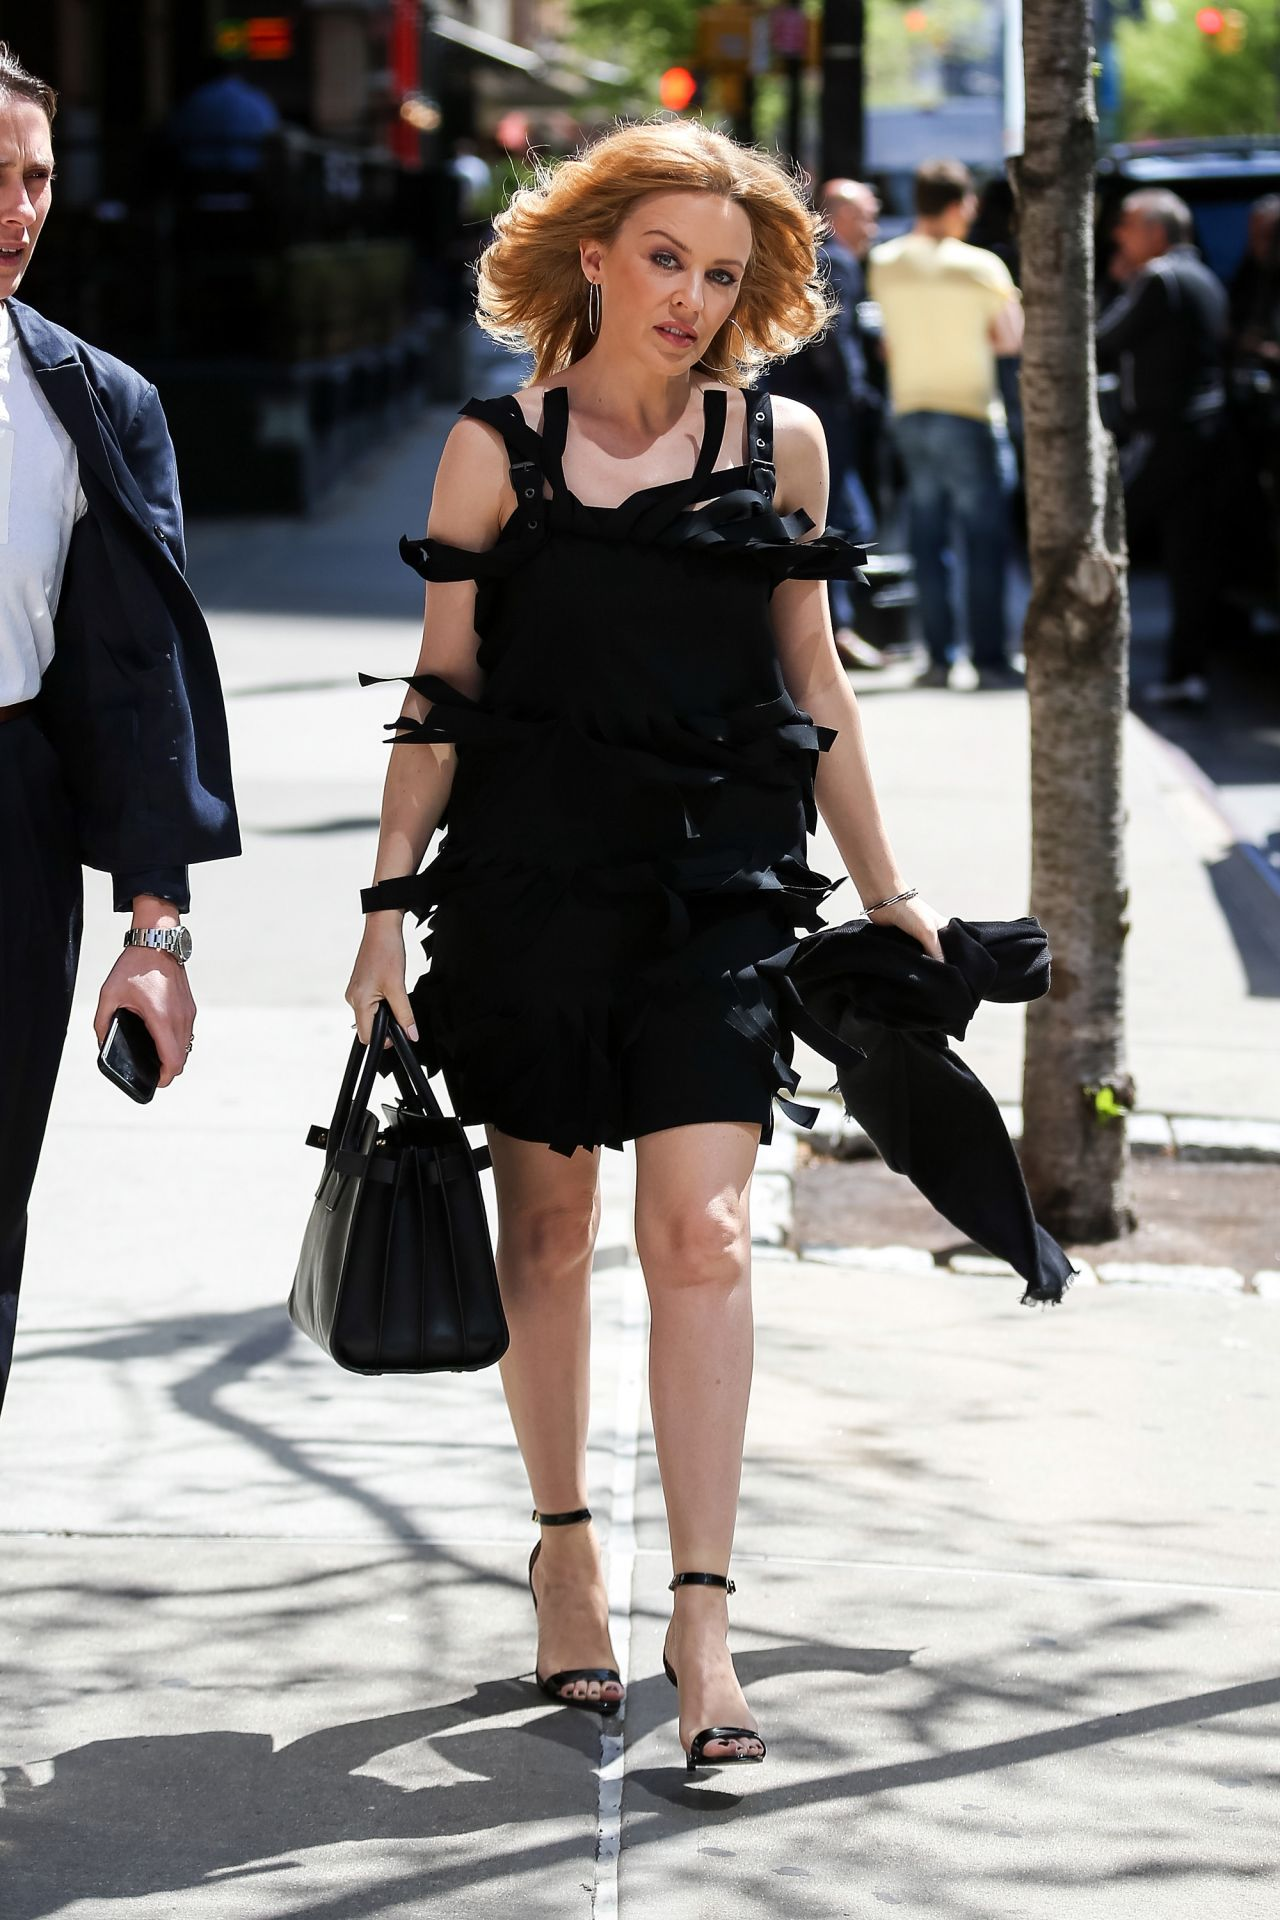 Kylie Minogue Flashes Her Legs in Mini Dress - Out in NYC - May 2014